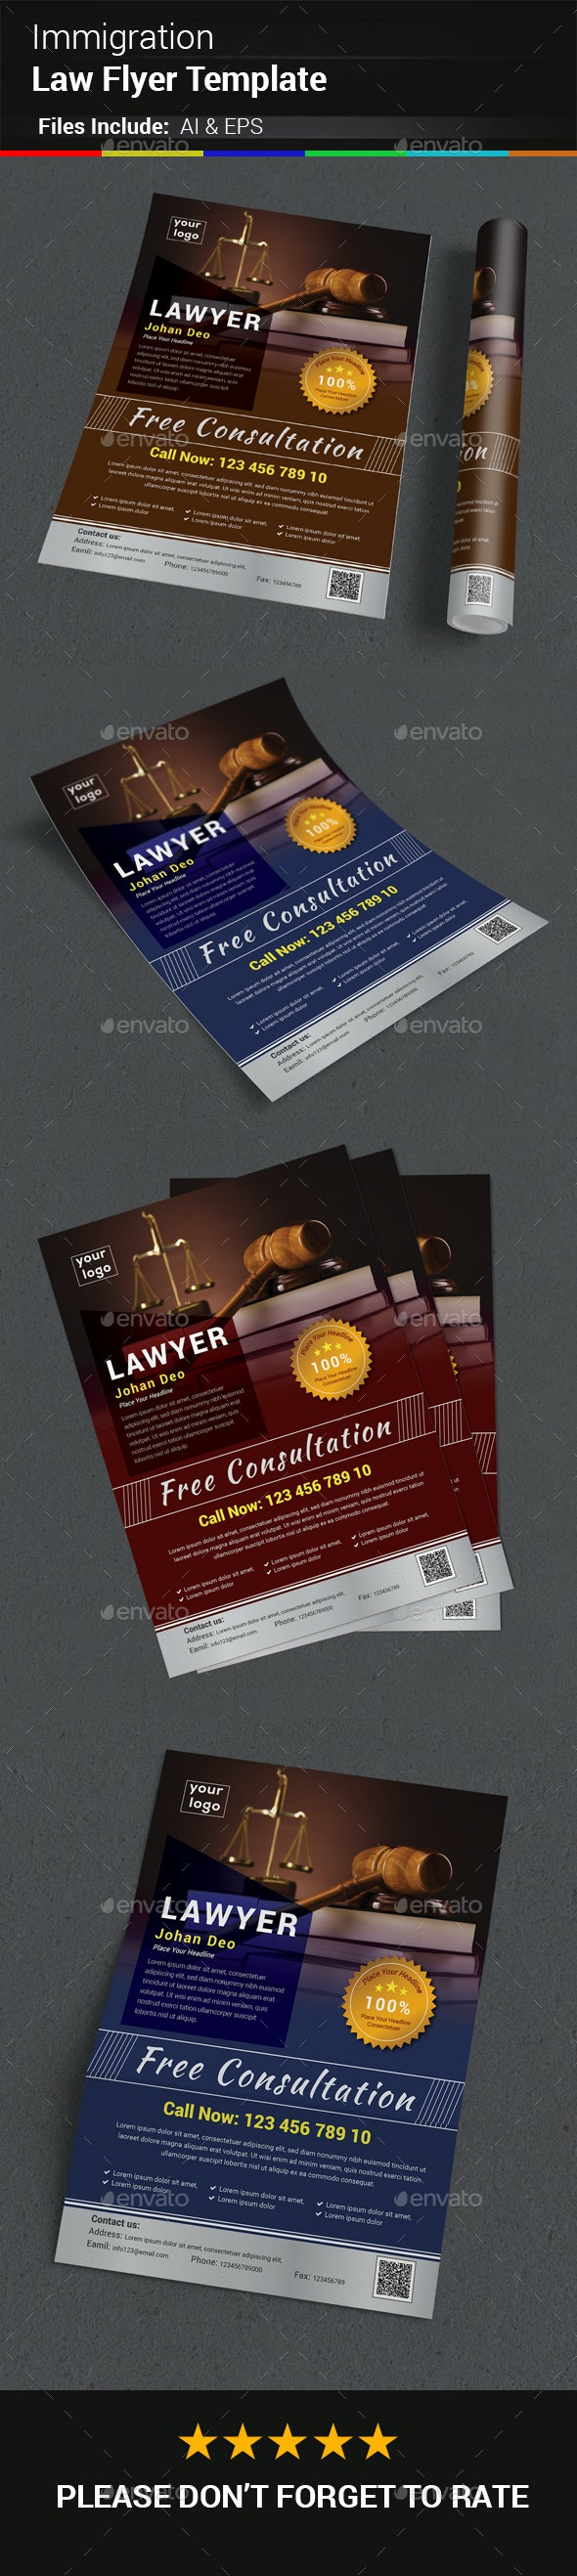 Immigration Law Flyer Template - Corporate Flyers